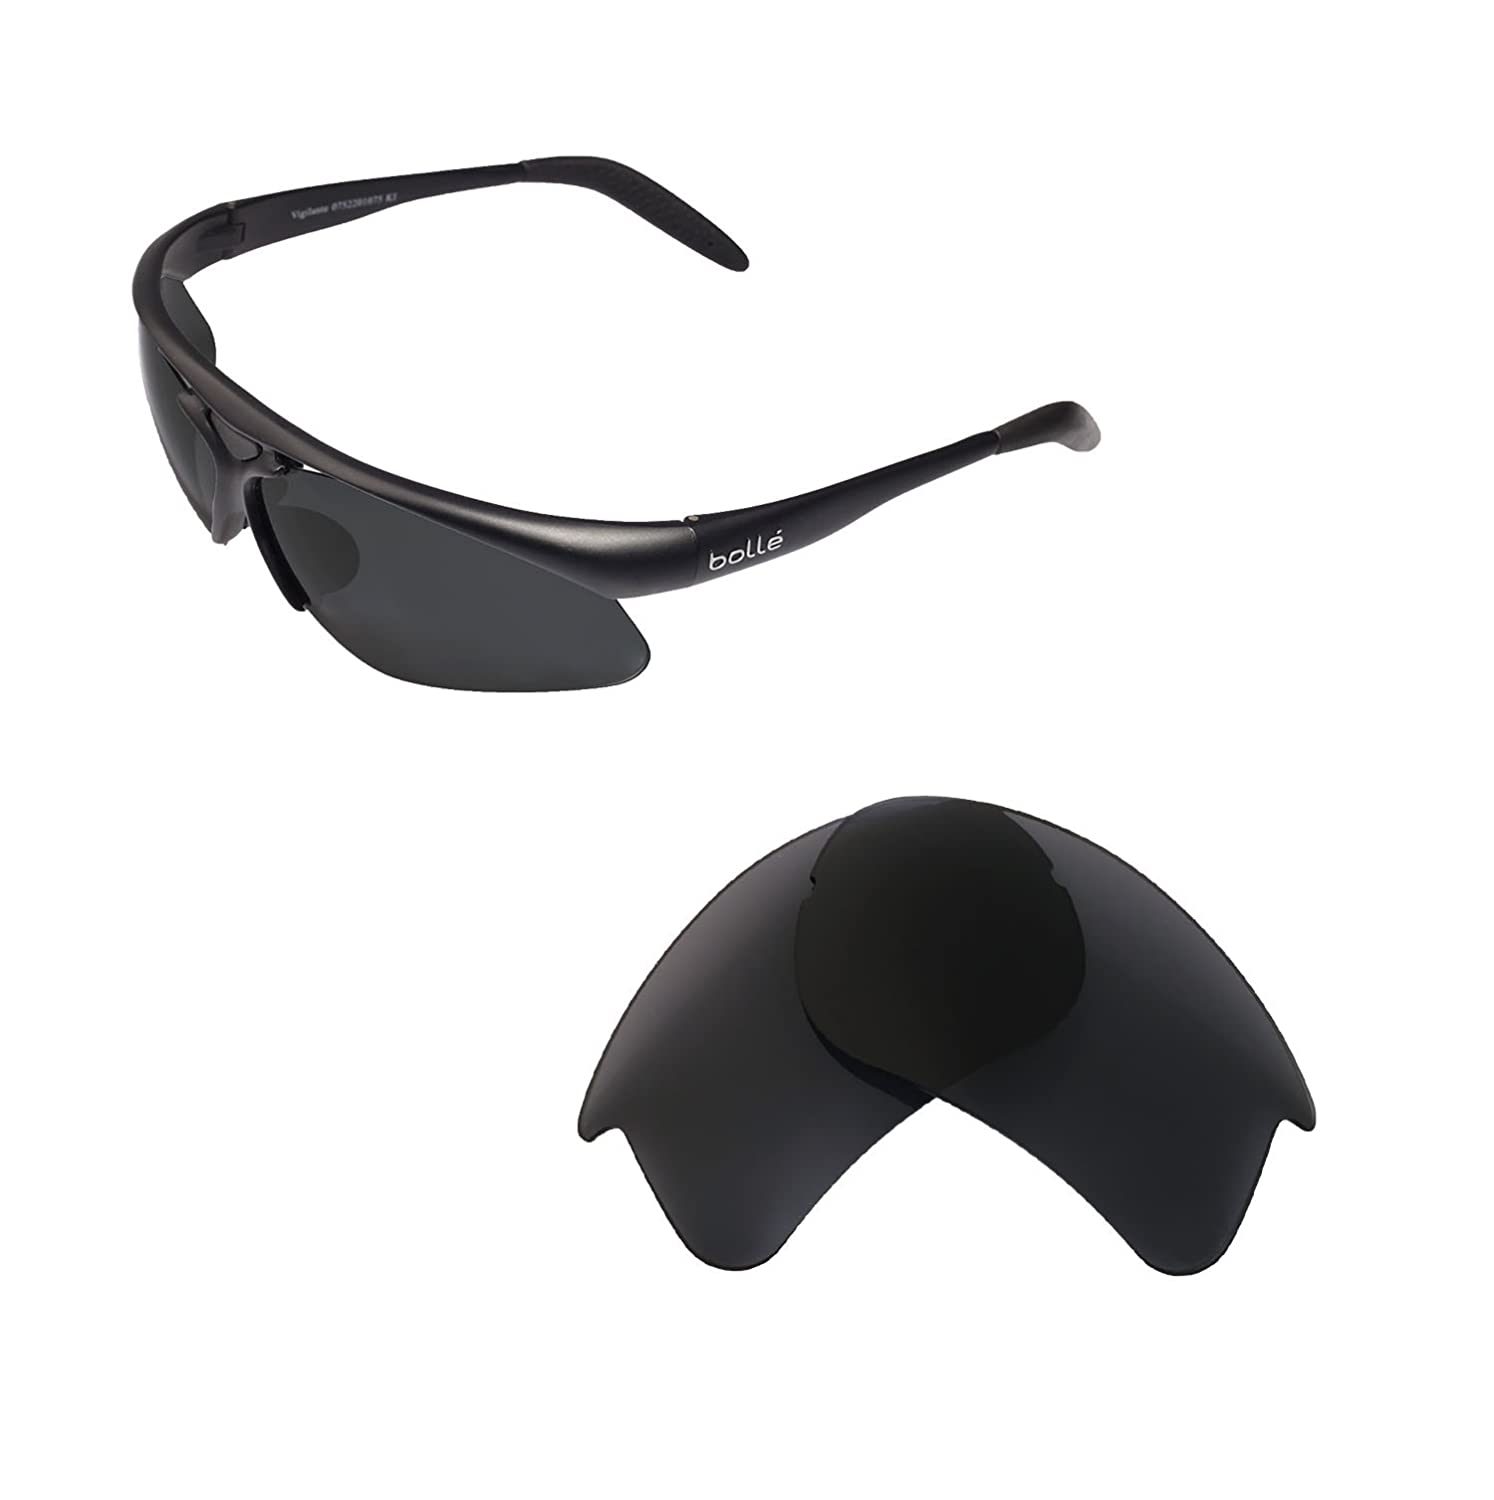 Walleva Replacement Lenses for Bolle Vigilante Sunglasses - Multiple Options Available